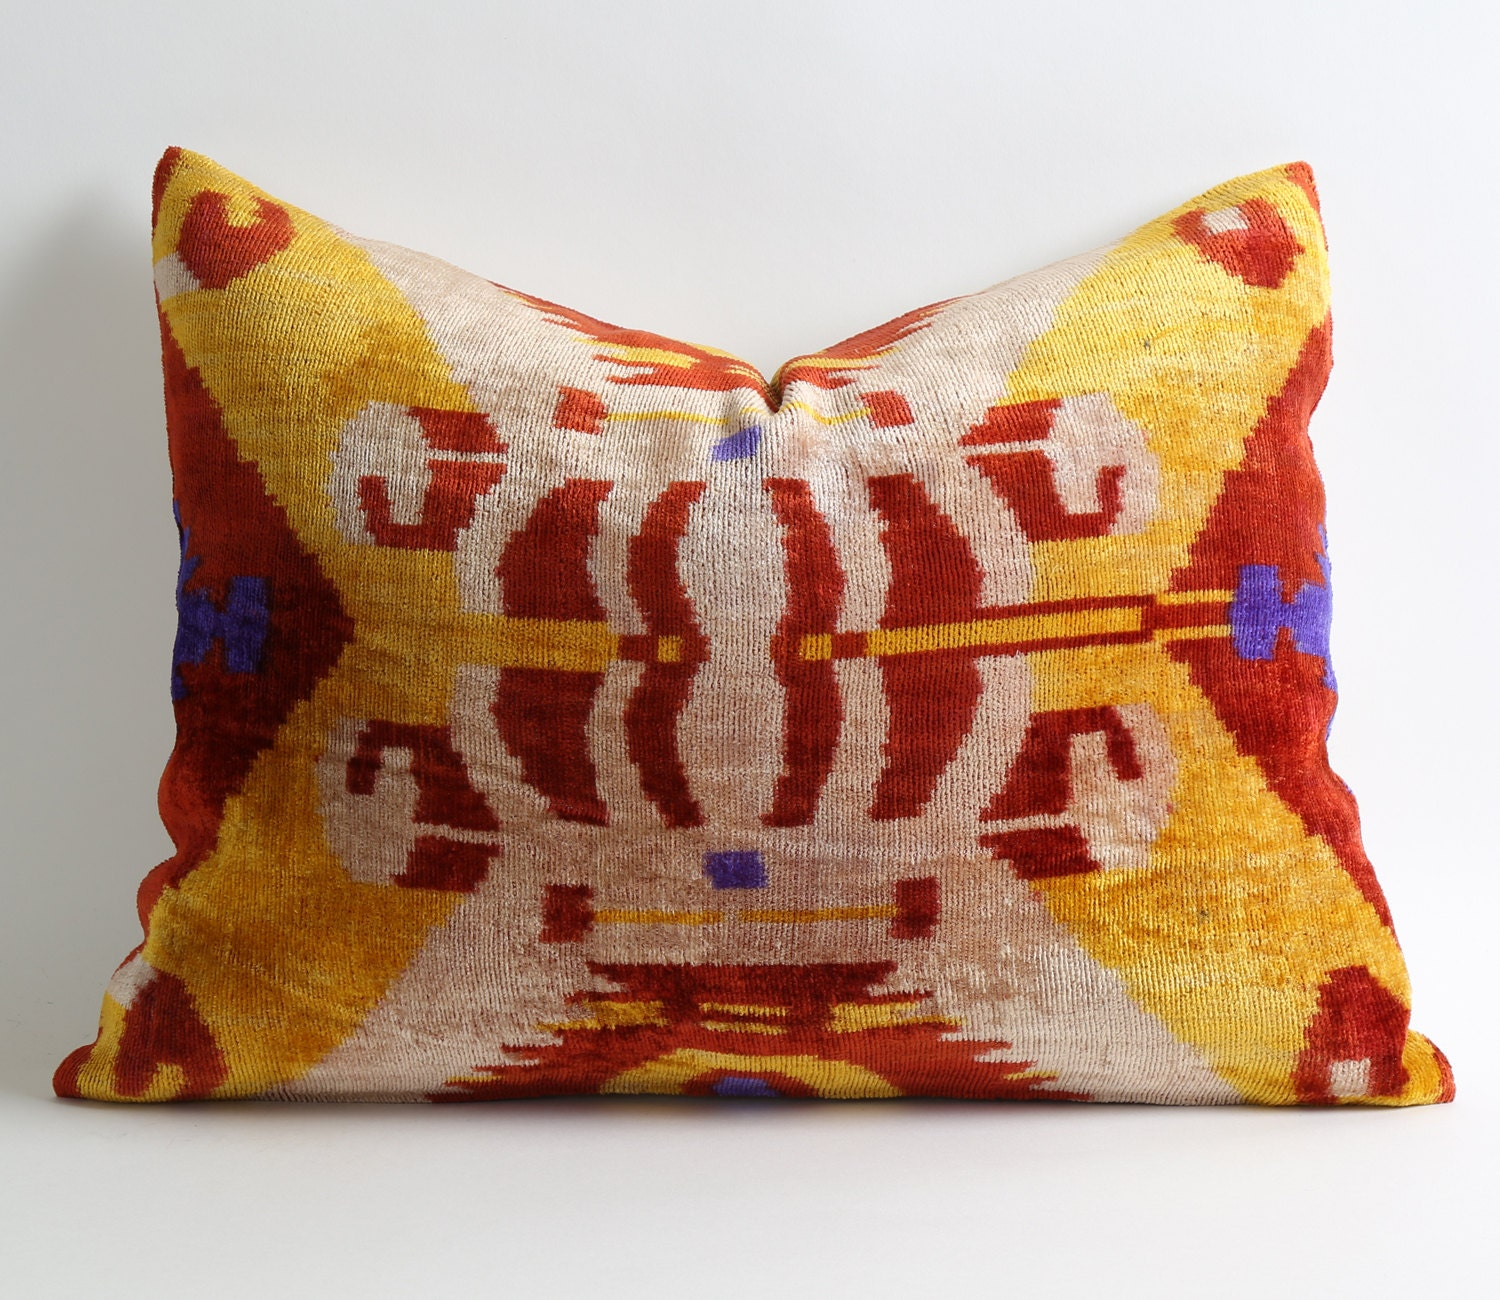 Decorative Pillows Etsy : Ikat Pillow Case Decorative Pillows For Couch Sofa Pillows